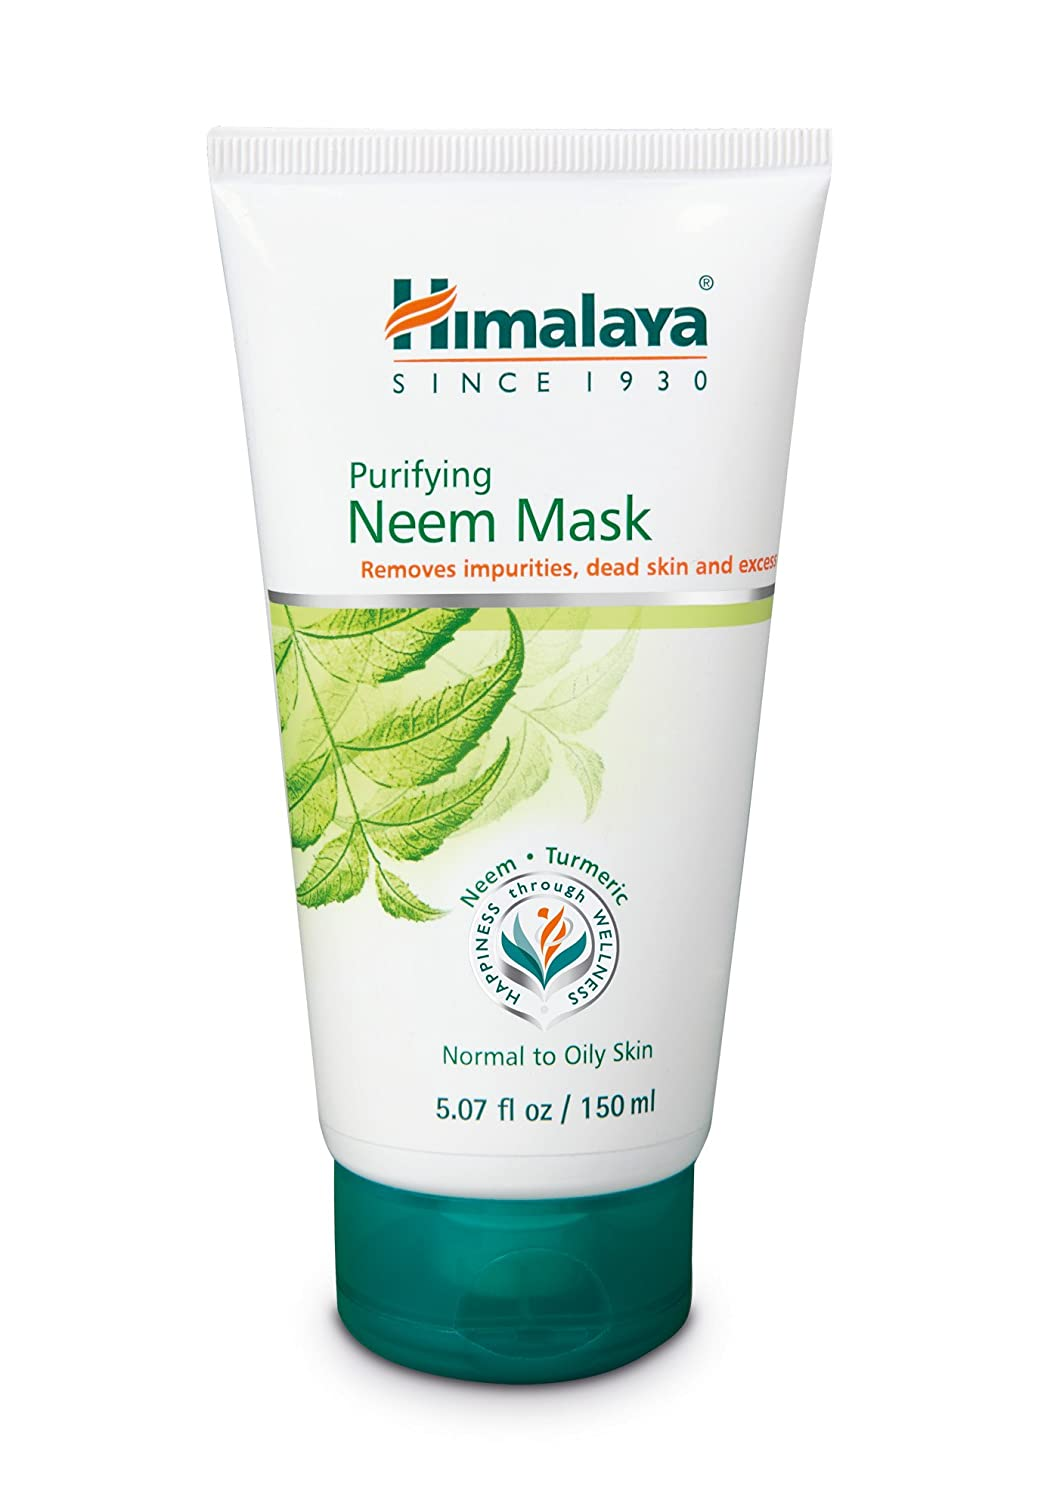 Himalaya Almond & Cucumber Peel-Off Mask, Removes Blemishes, Dead Cells and Impurities 5.07oz/150ml The Himalaya Drug Company